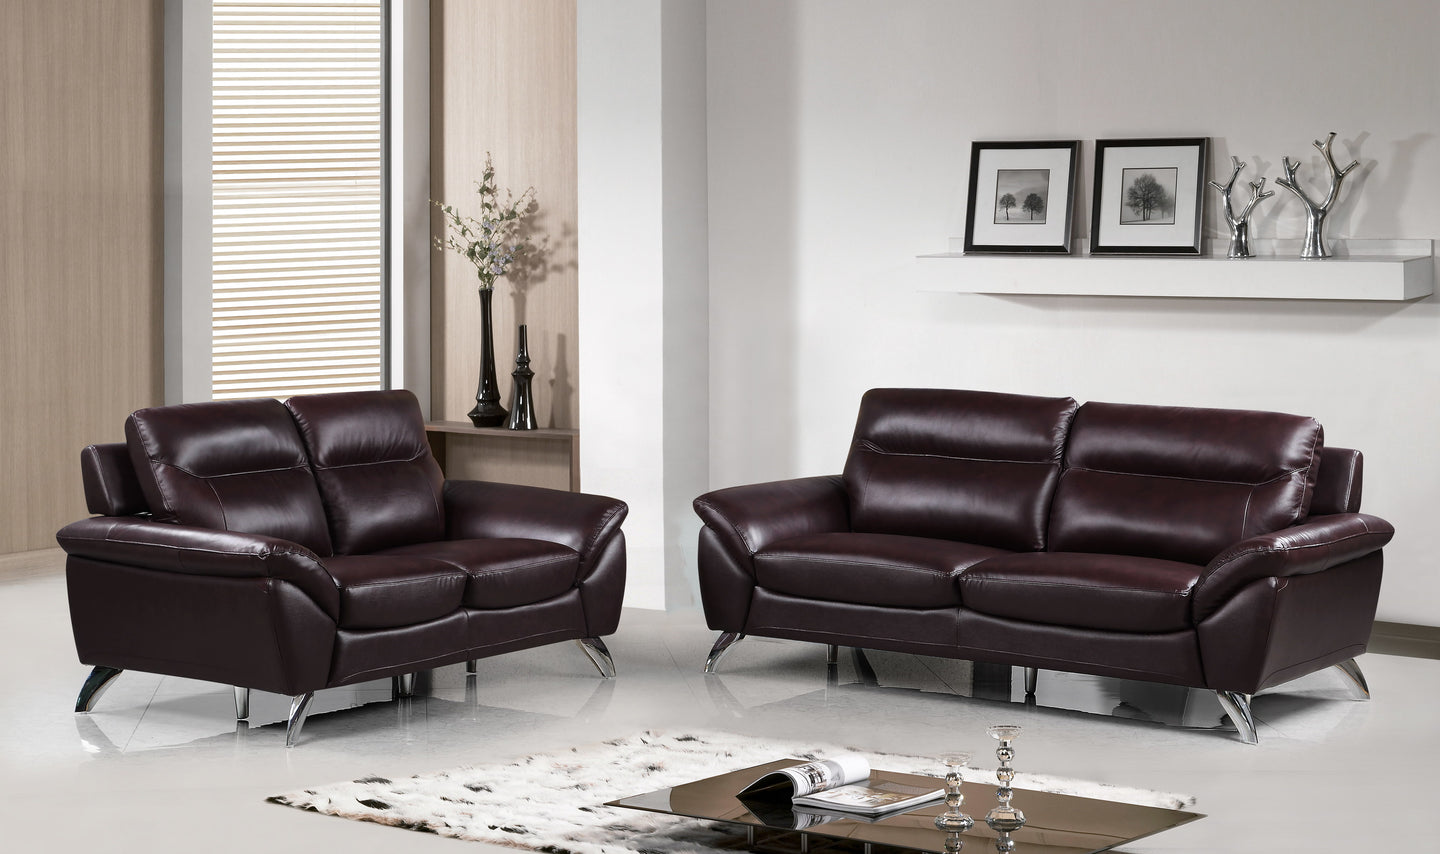 Cortesi Home Contemporary Madison Genuine Leather Sofa & Loveseat Set, Merlot